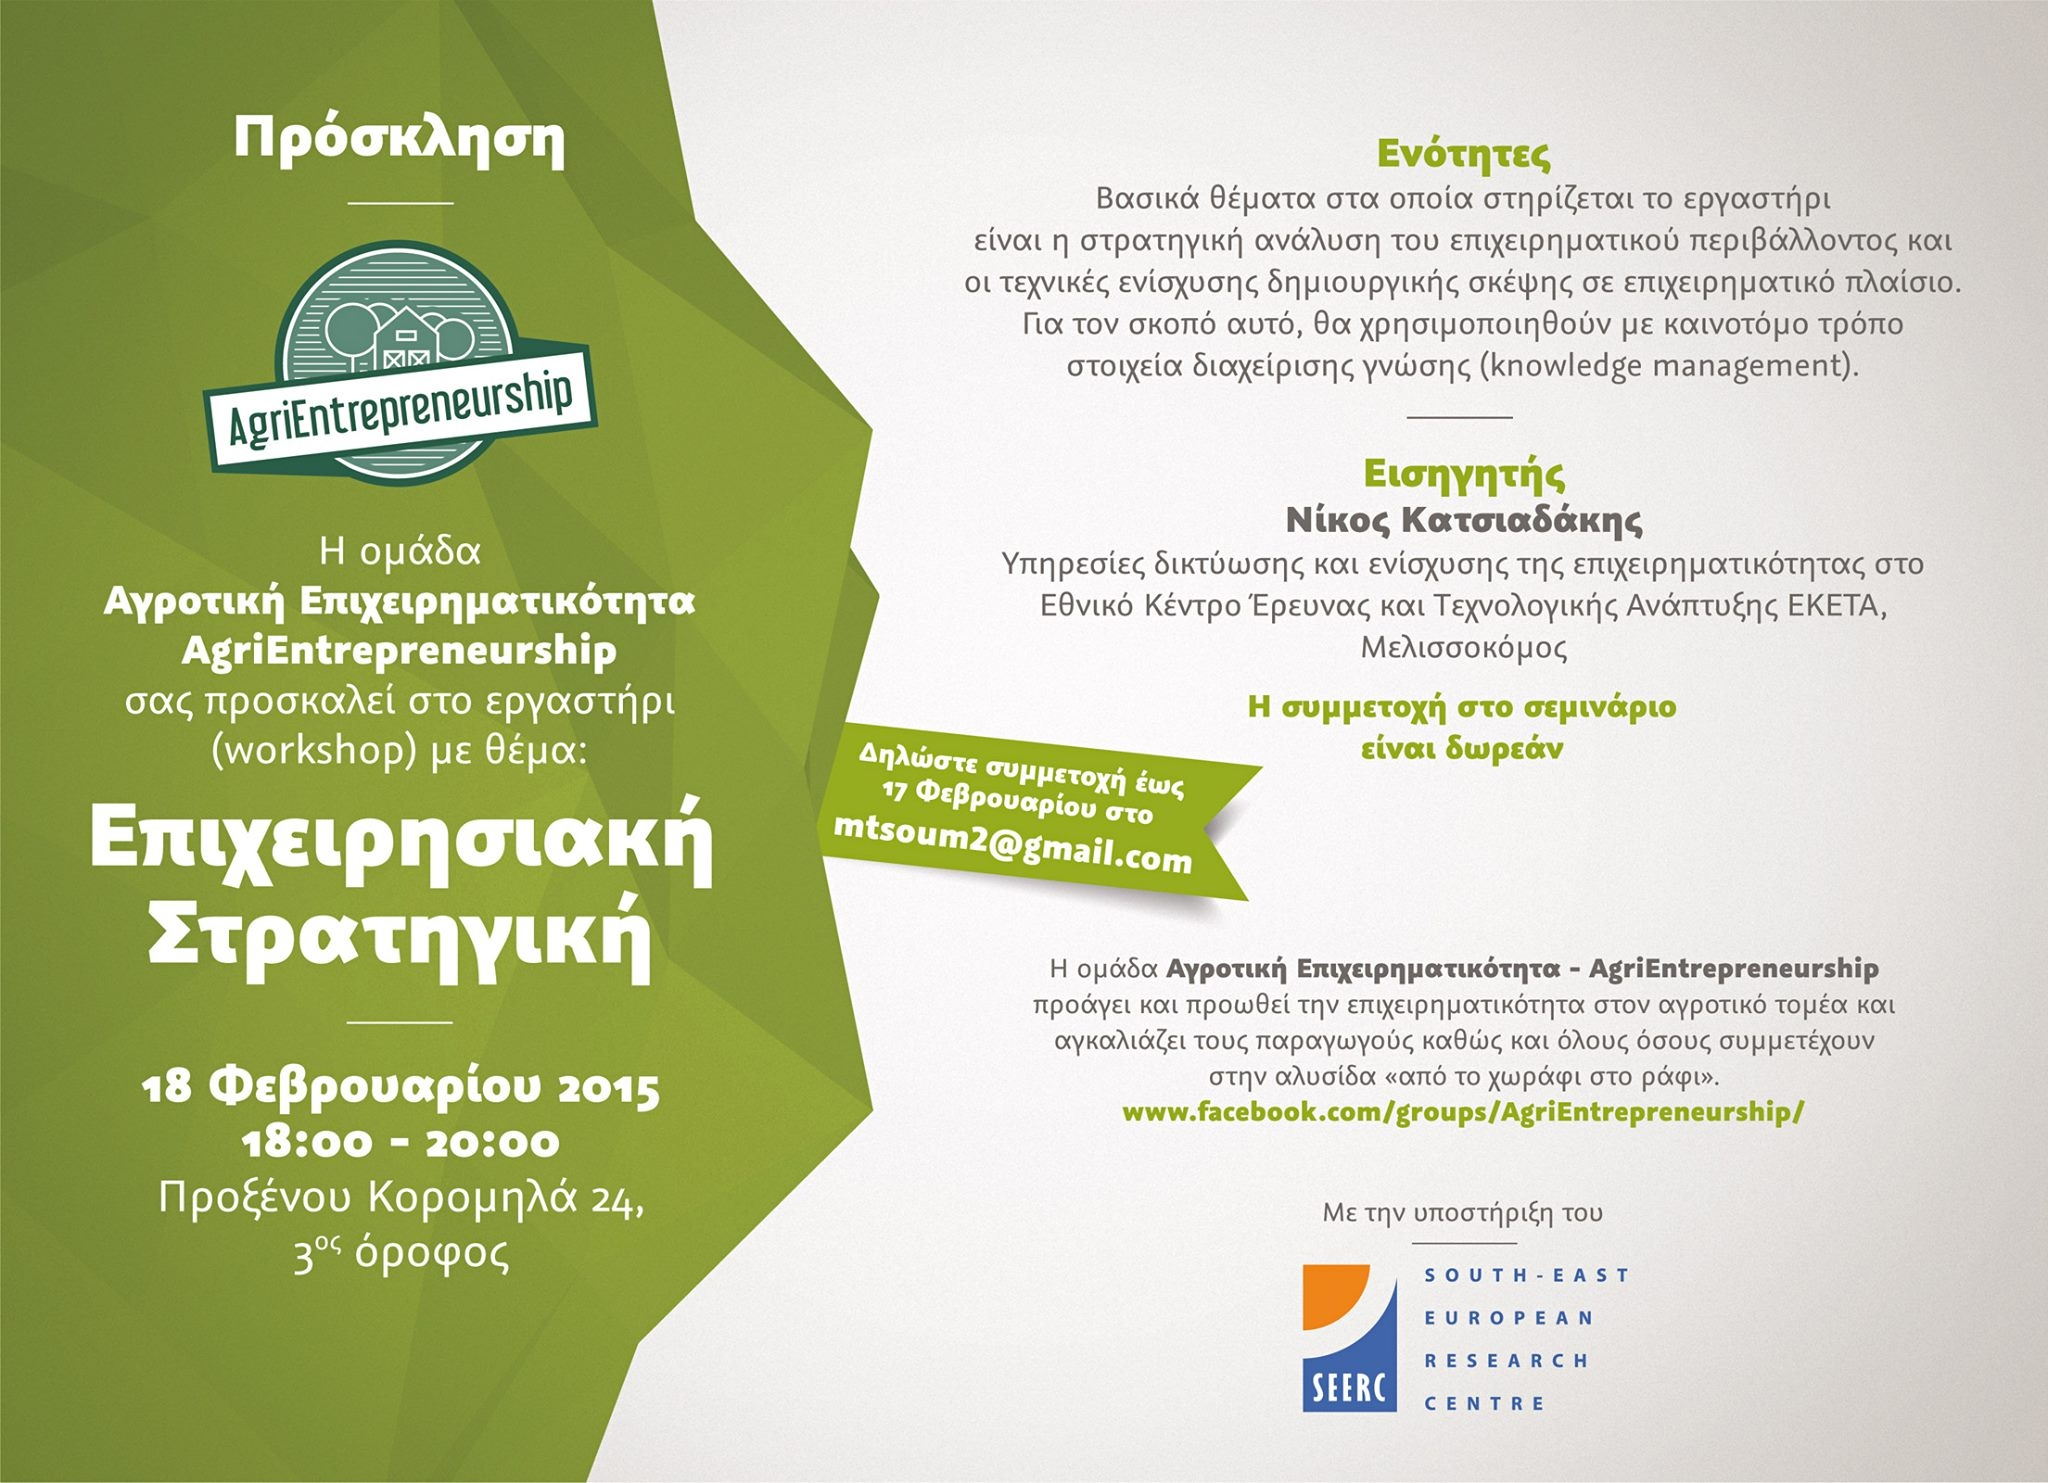 AgriEntrepreneurship event: Business Strategy Workshop_18 February 2015